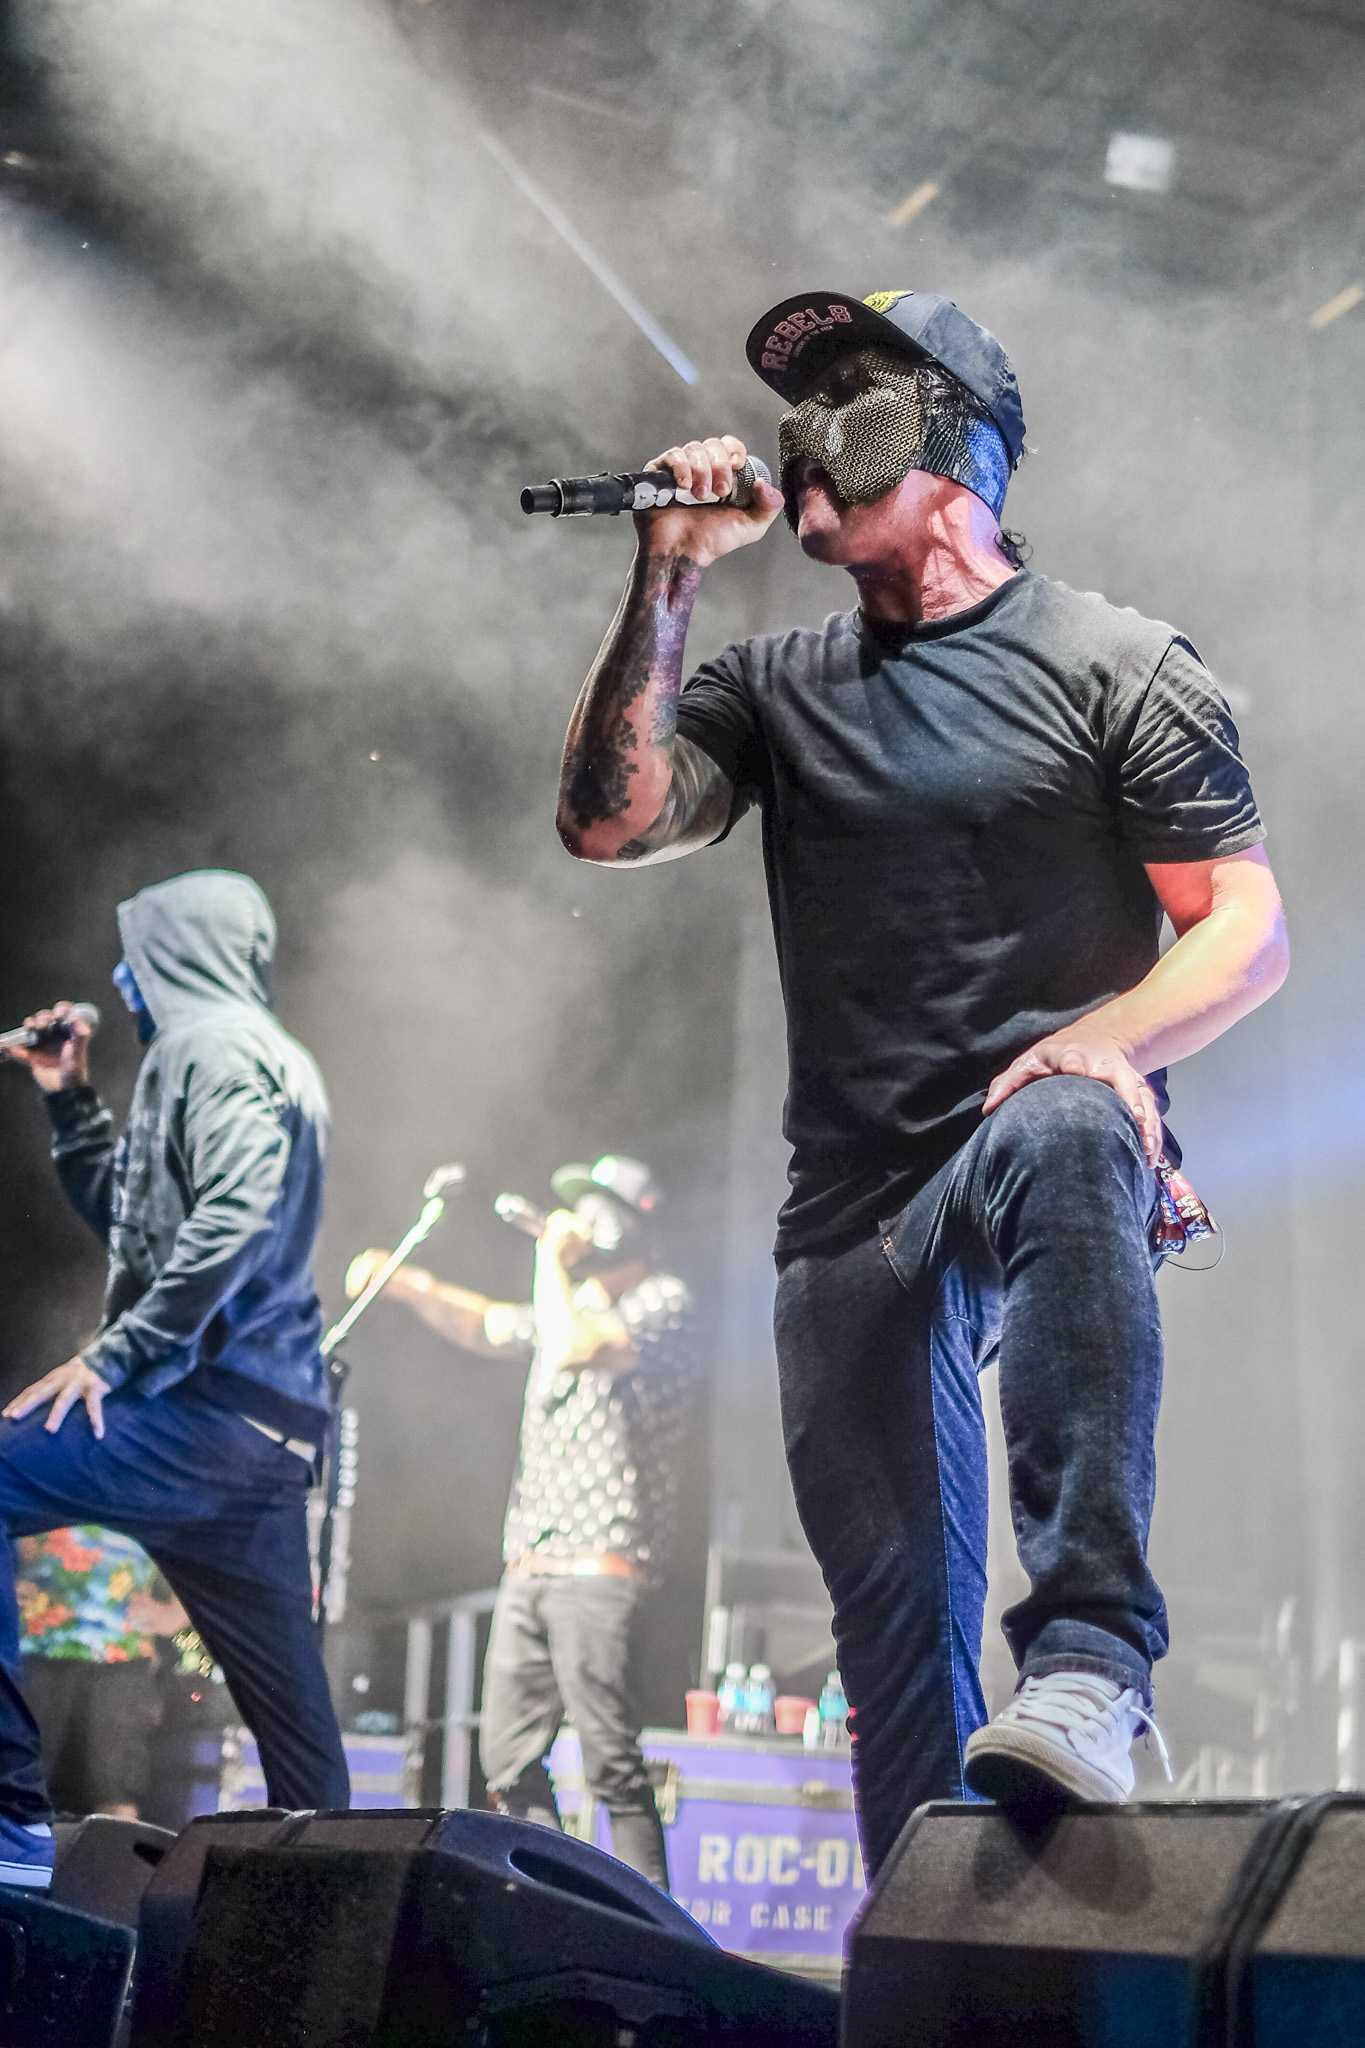 Hollywood Undead came out in masks in the beginning of their set. Mohammed F Emran   Staff Photographer